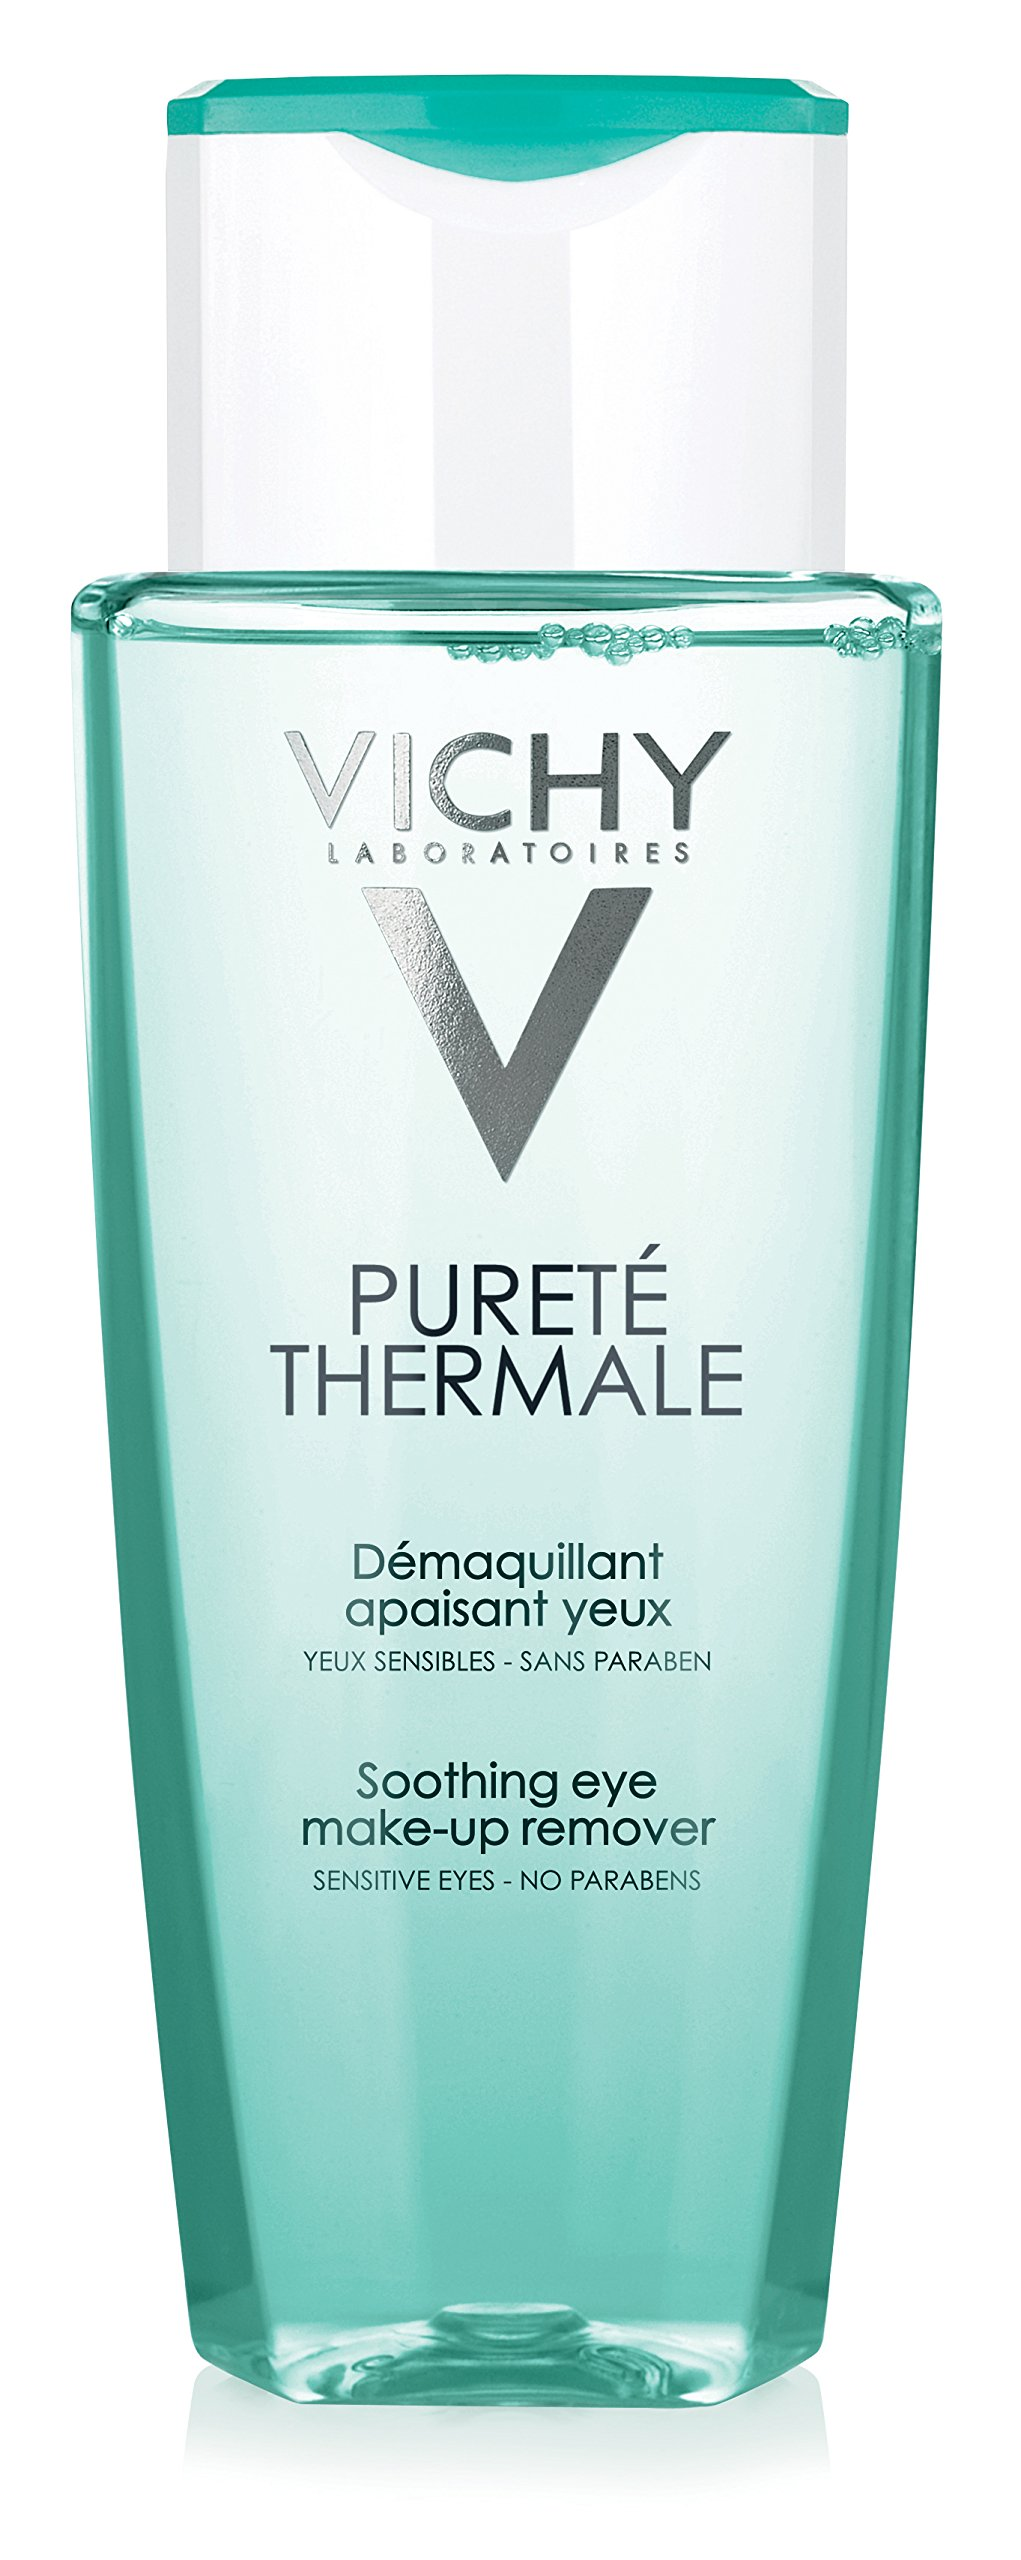 Vichy Pureté Thermale Soothing Eye Makeup Remover, 5.1 Fl Oz